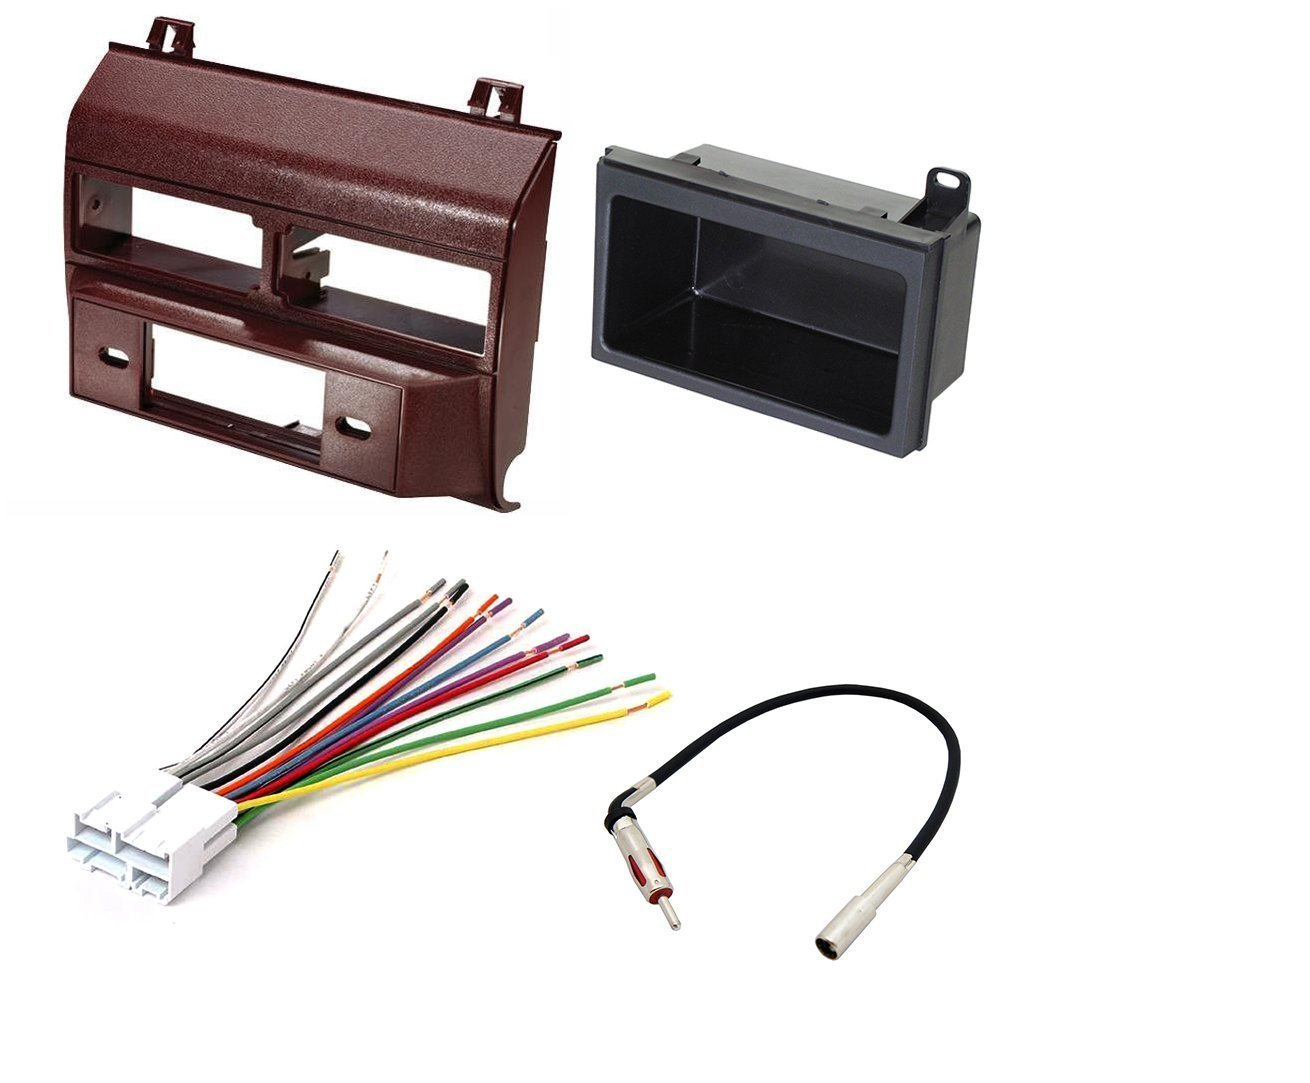 car stereo radio dash installation mounting kit add on storage rh walmart com Wire Harness Manufacturing Storage Wire Baskets for Storage